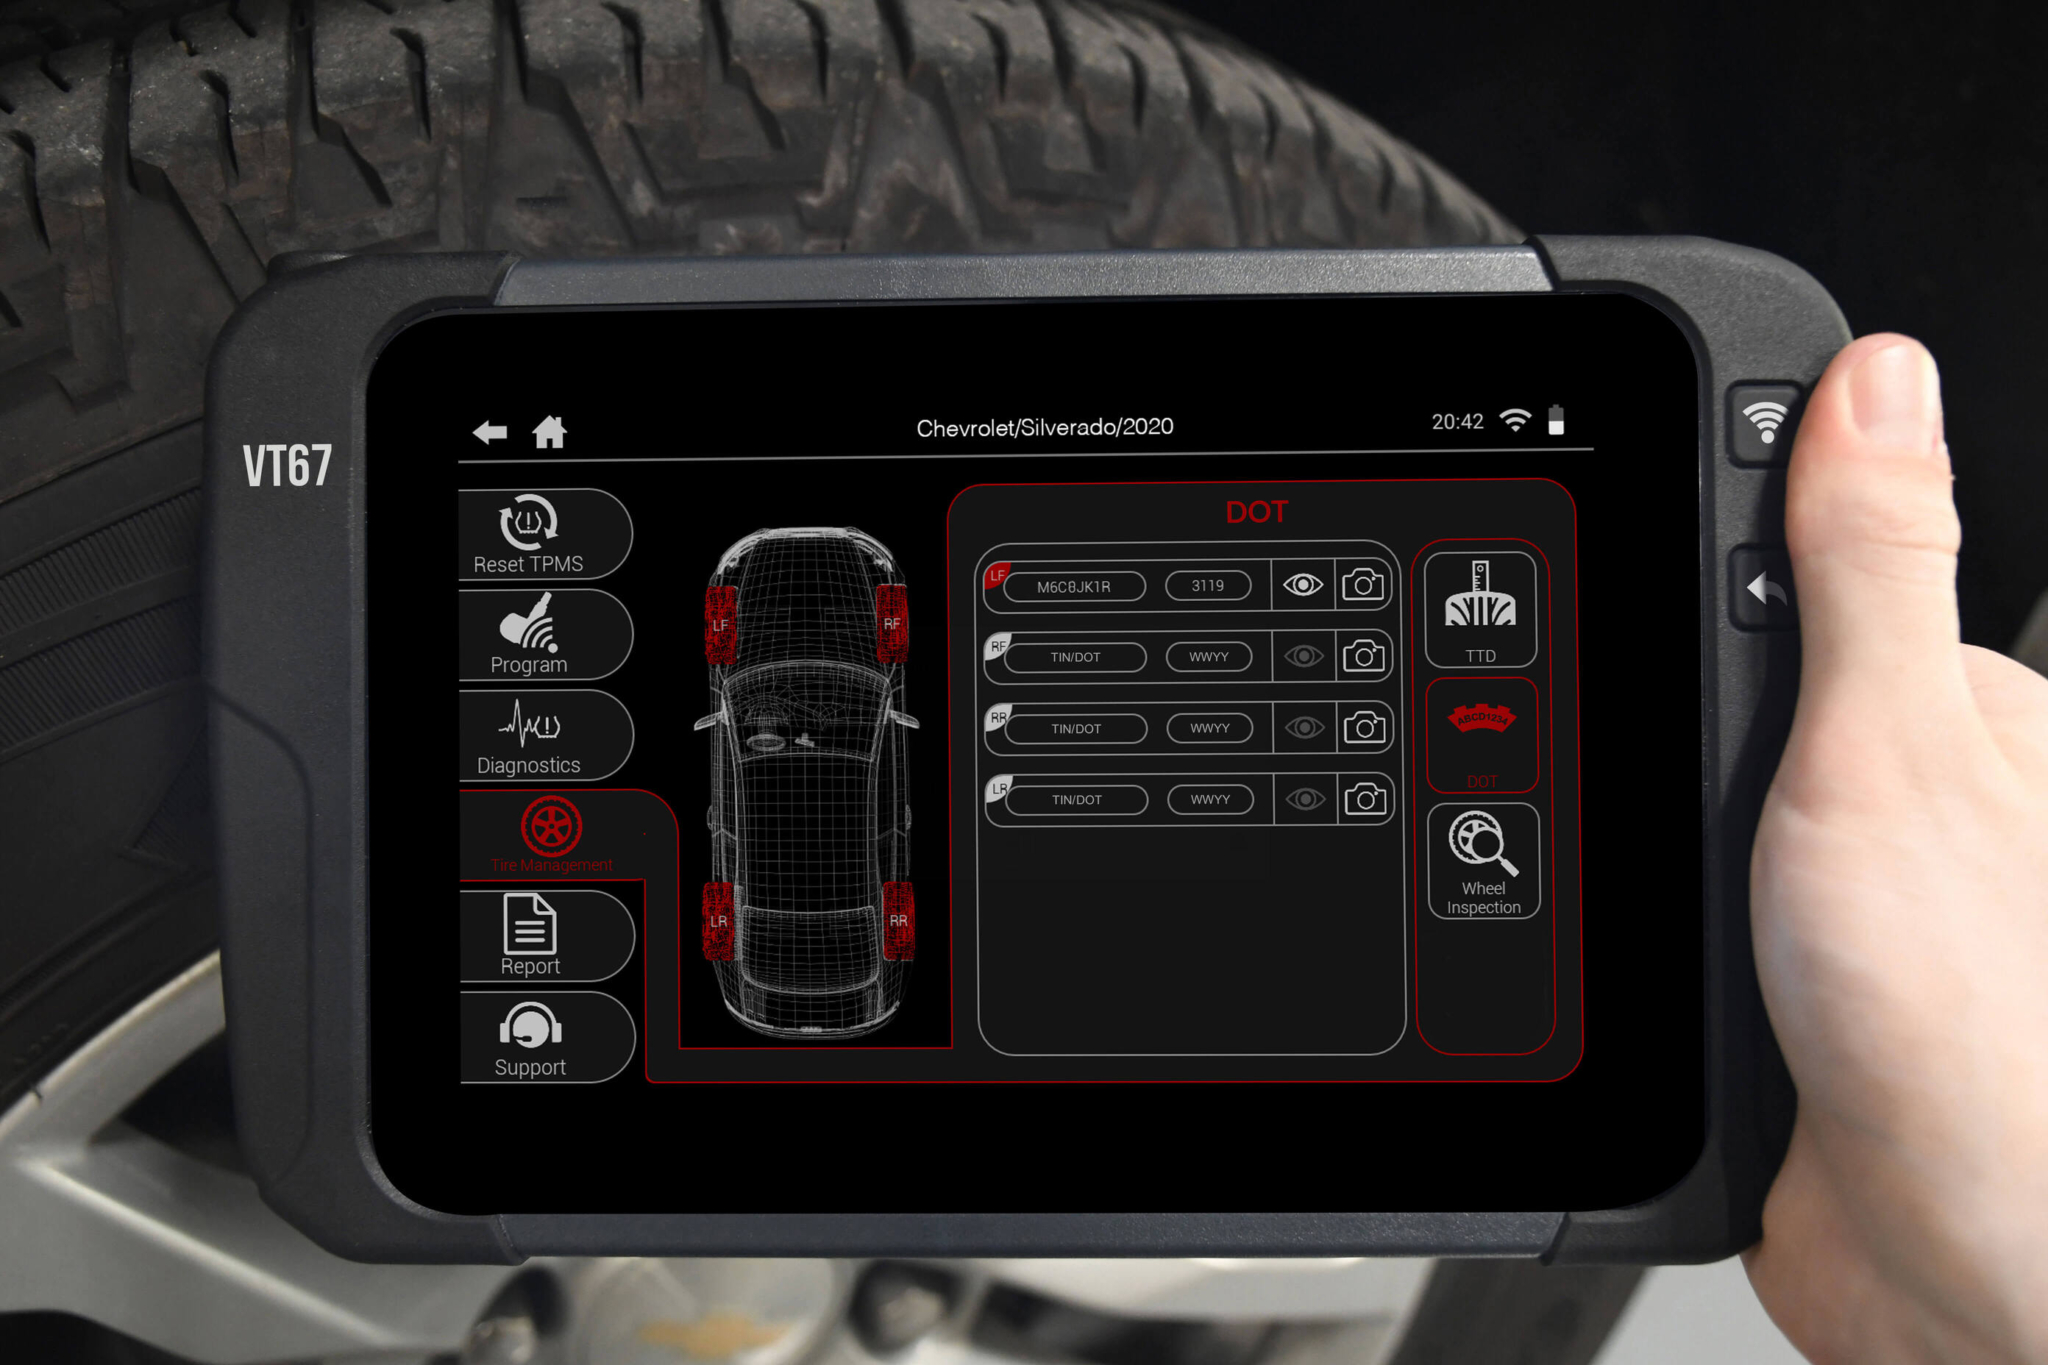 ATEQ TPMS Tools partners with Anyline to enable DOT and VIN scanning